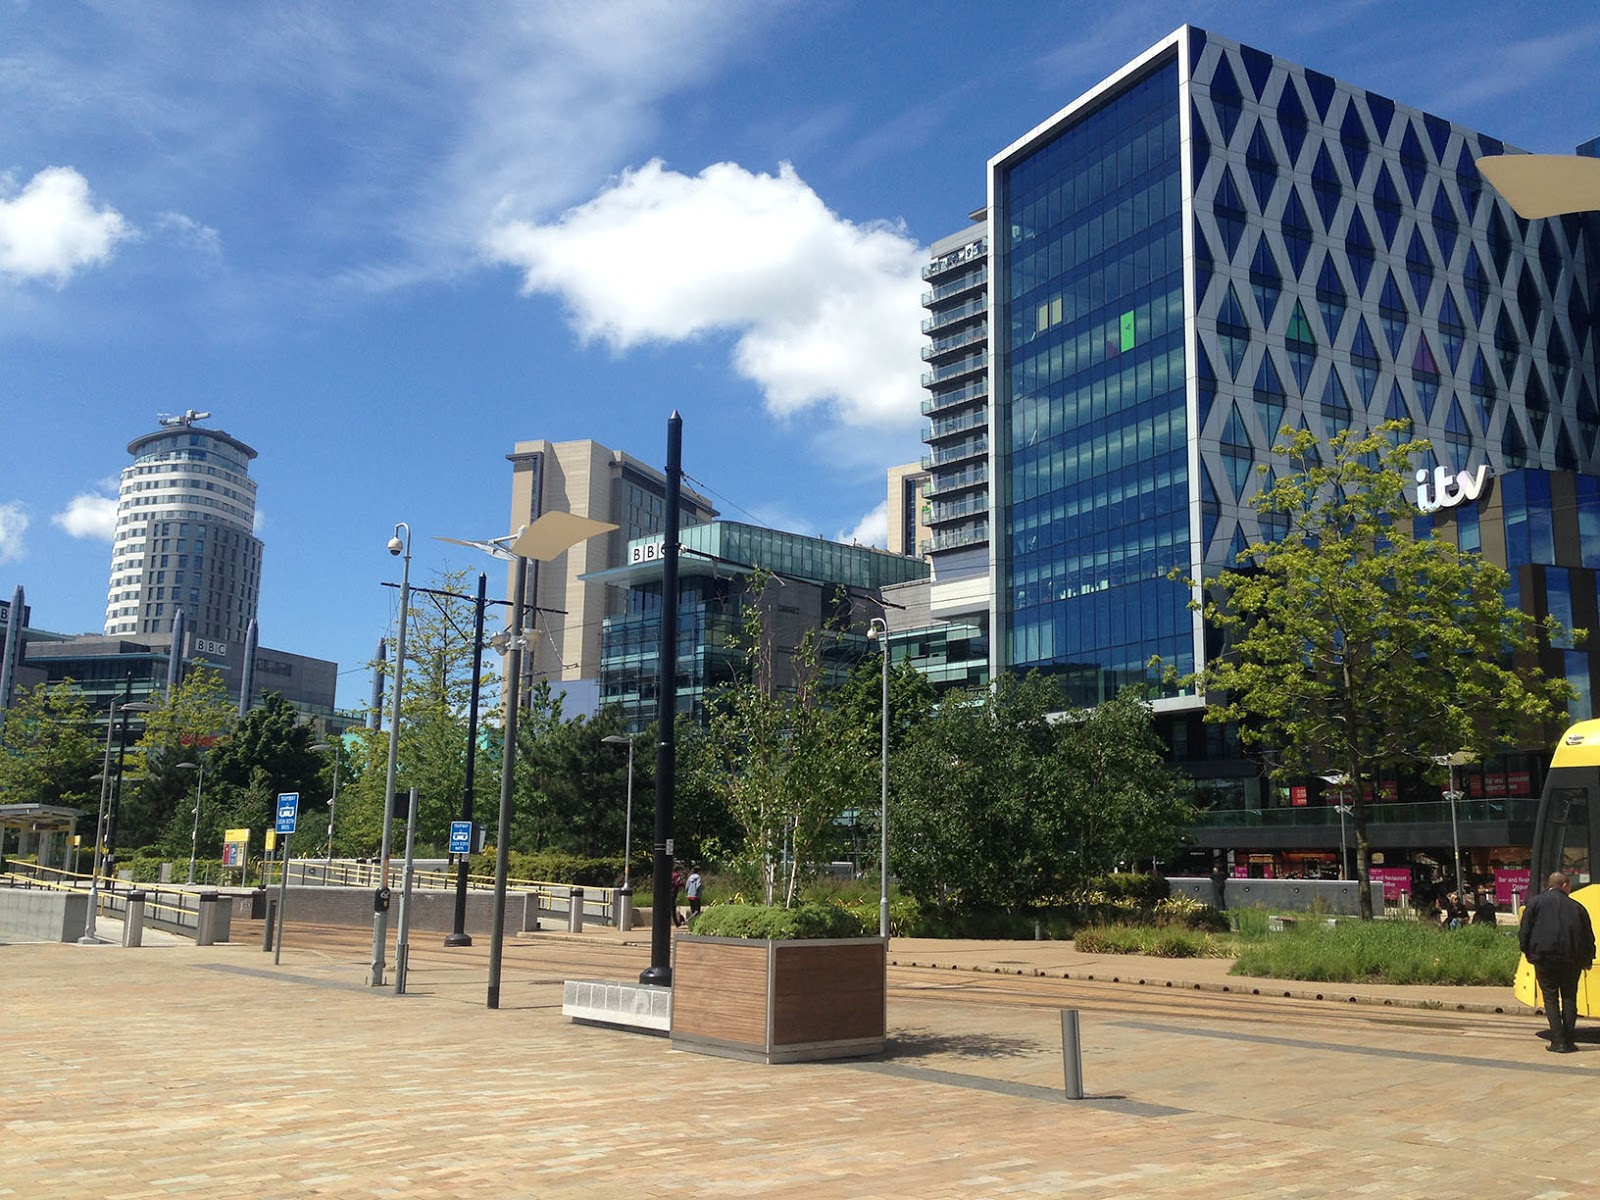 Running Routes: Manchester Salford Quays Running Route